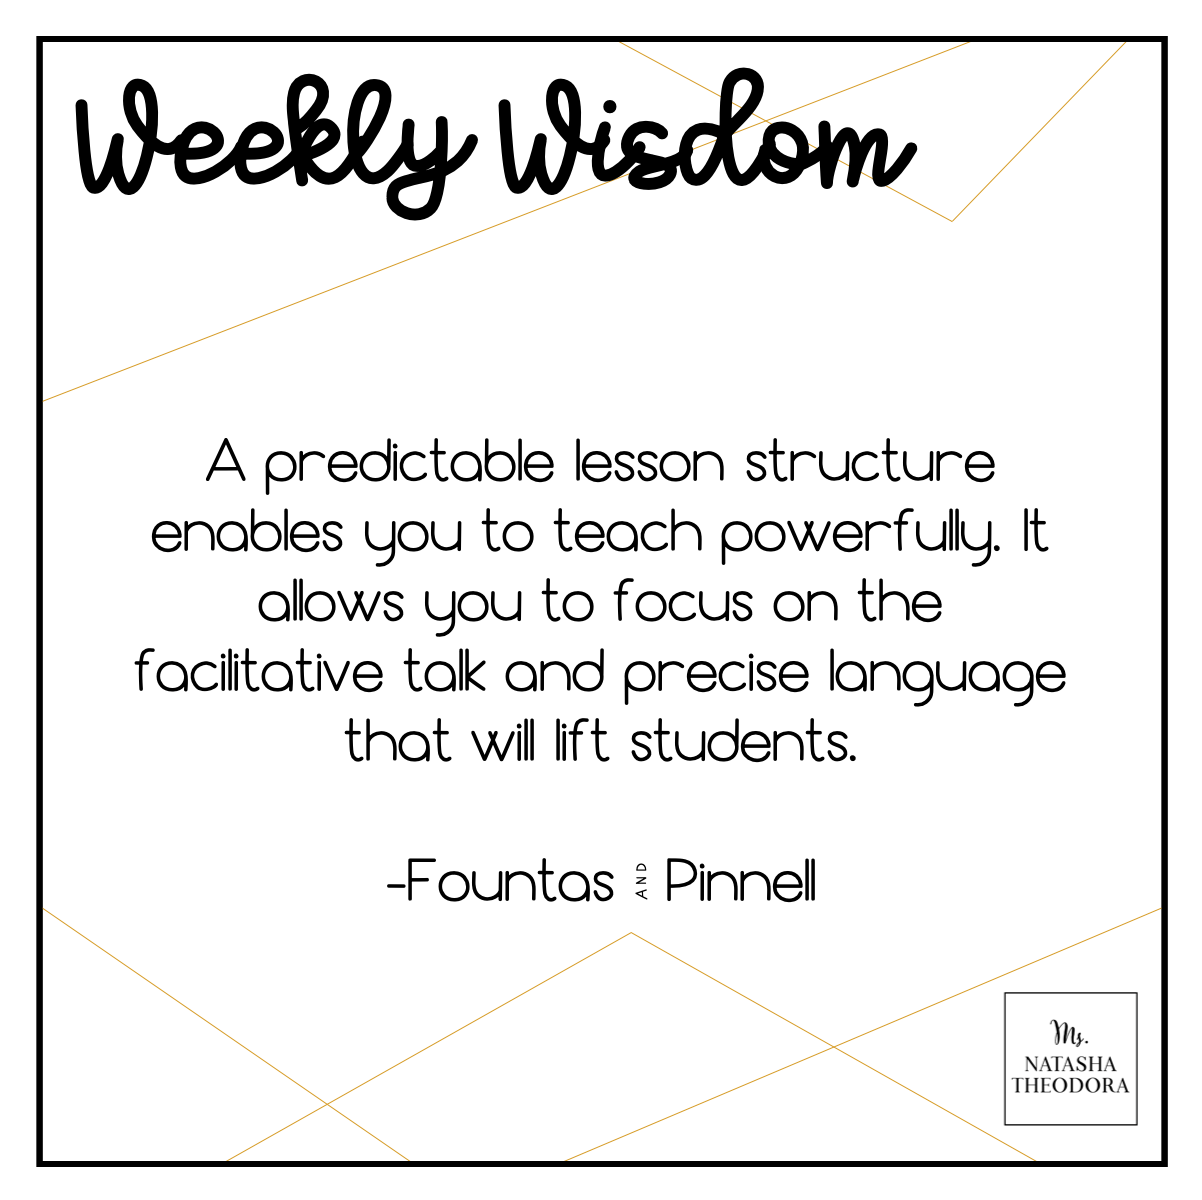 A predictable lesson structure enables you to teach powerfully, it allows you to focus on the facilitative talk and precise language that will lift students. -Fountas and Pinnell